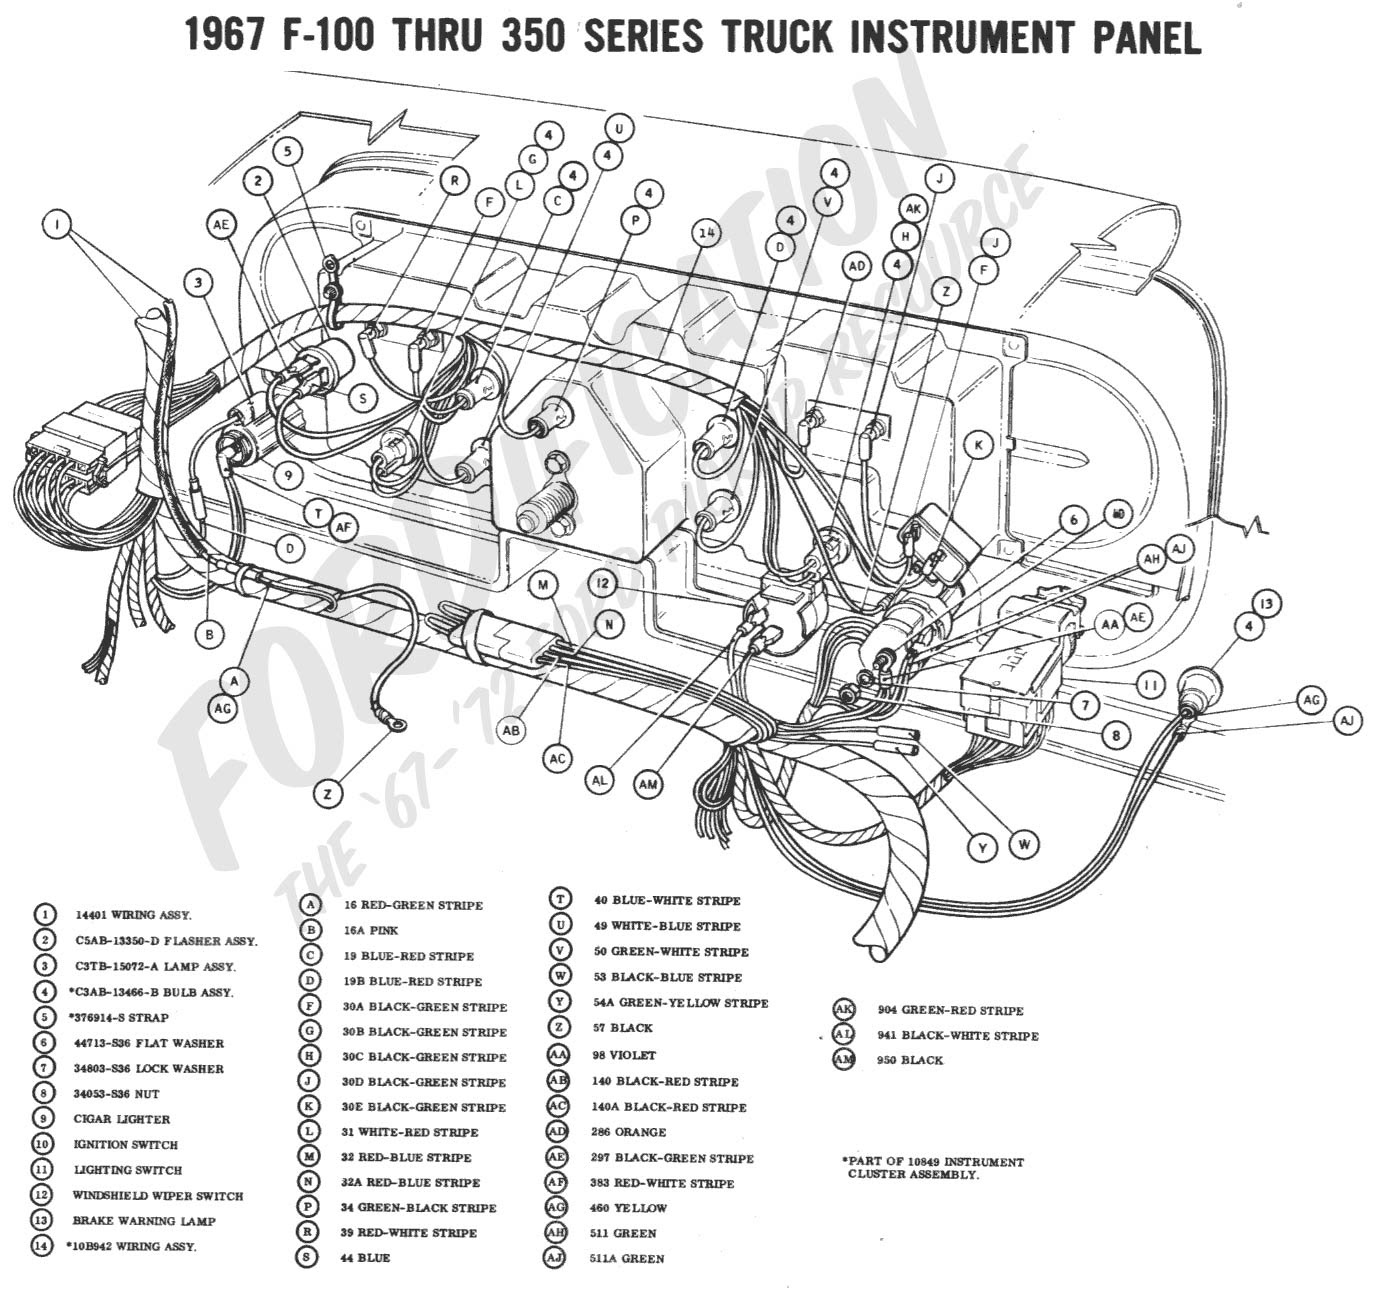 1965 Mustang Engine 289 Diagram Carrier Hvac Schematics Bege Wiring Diagram